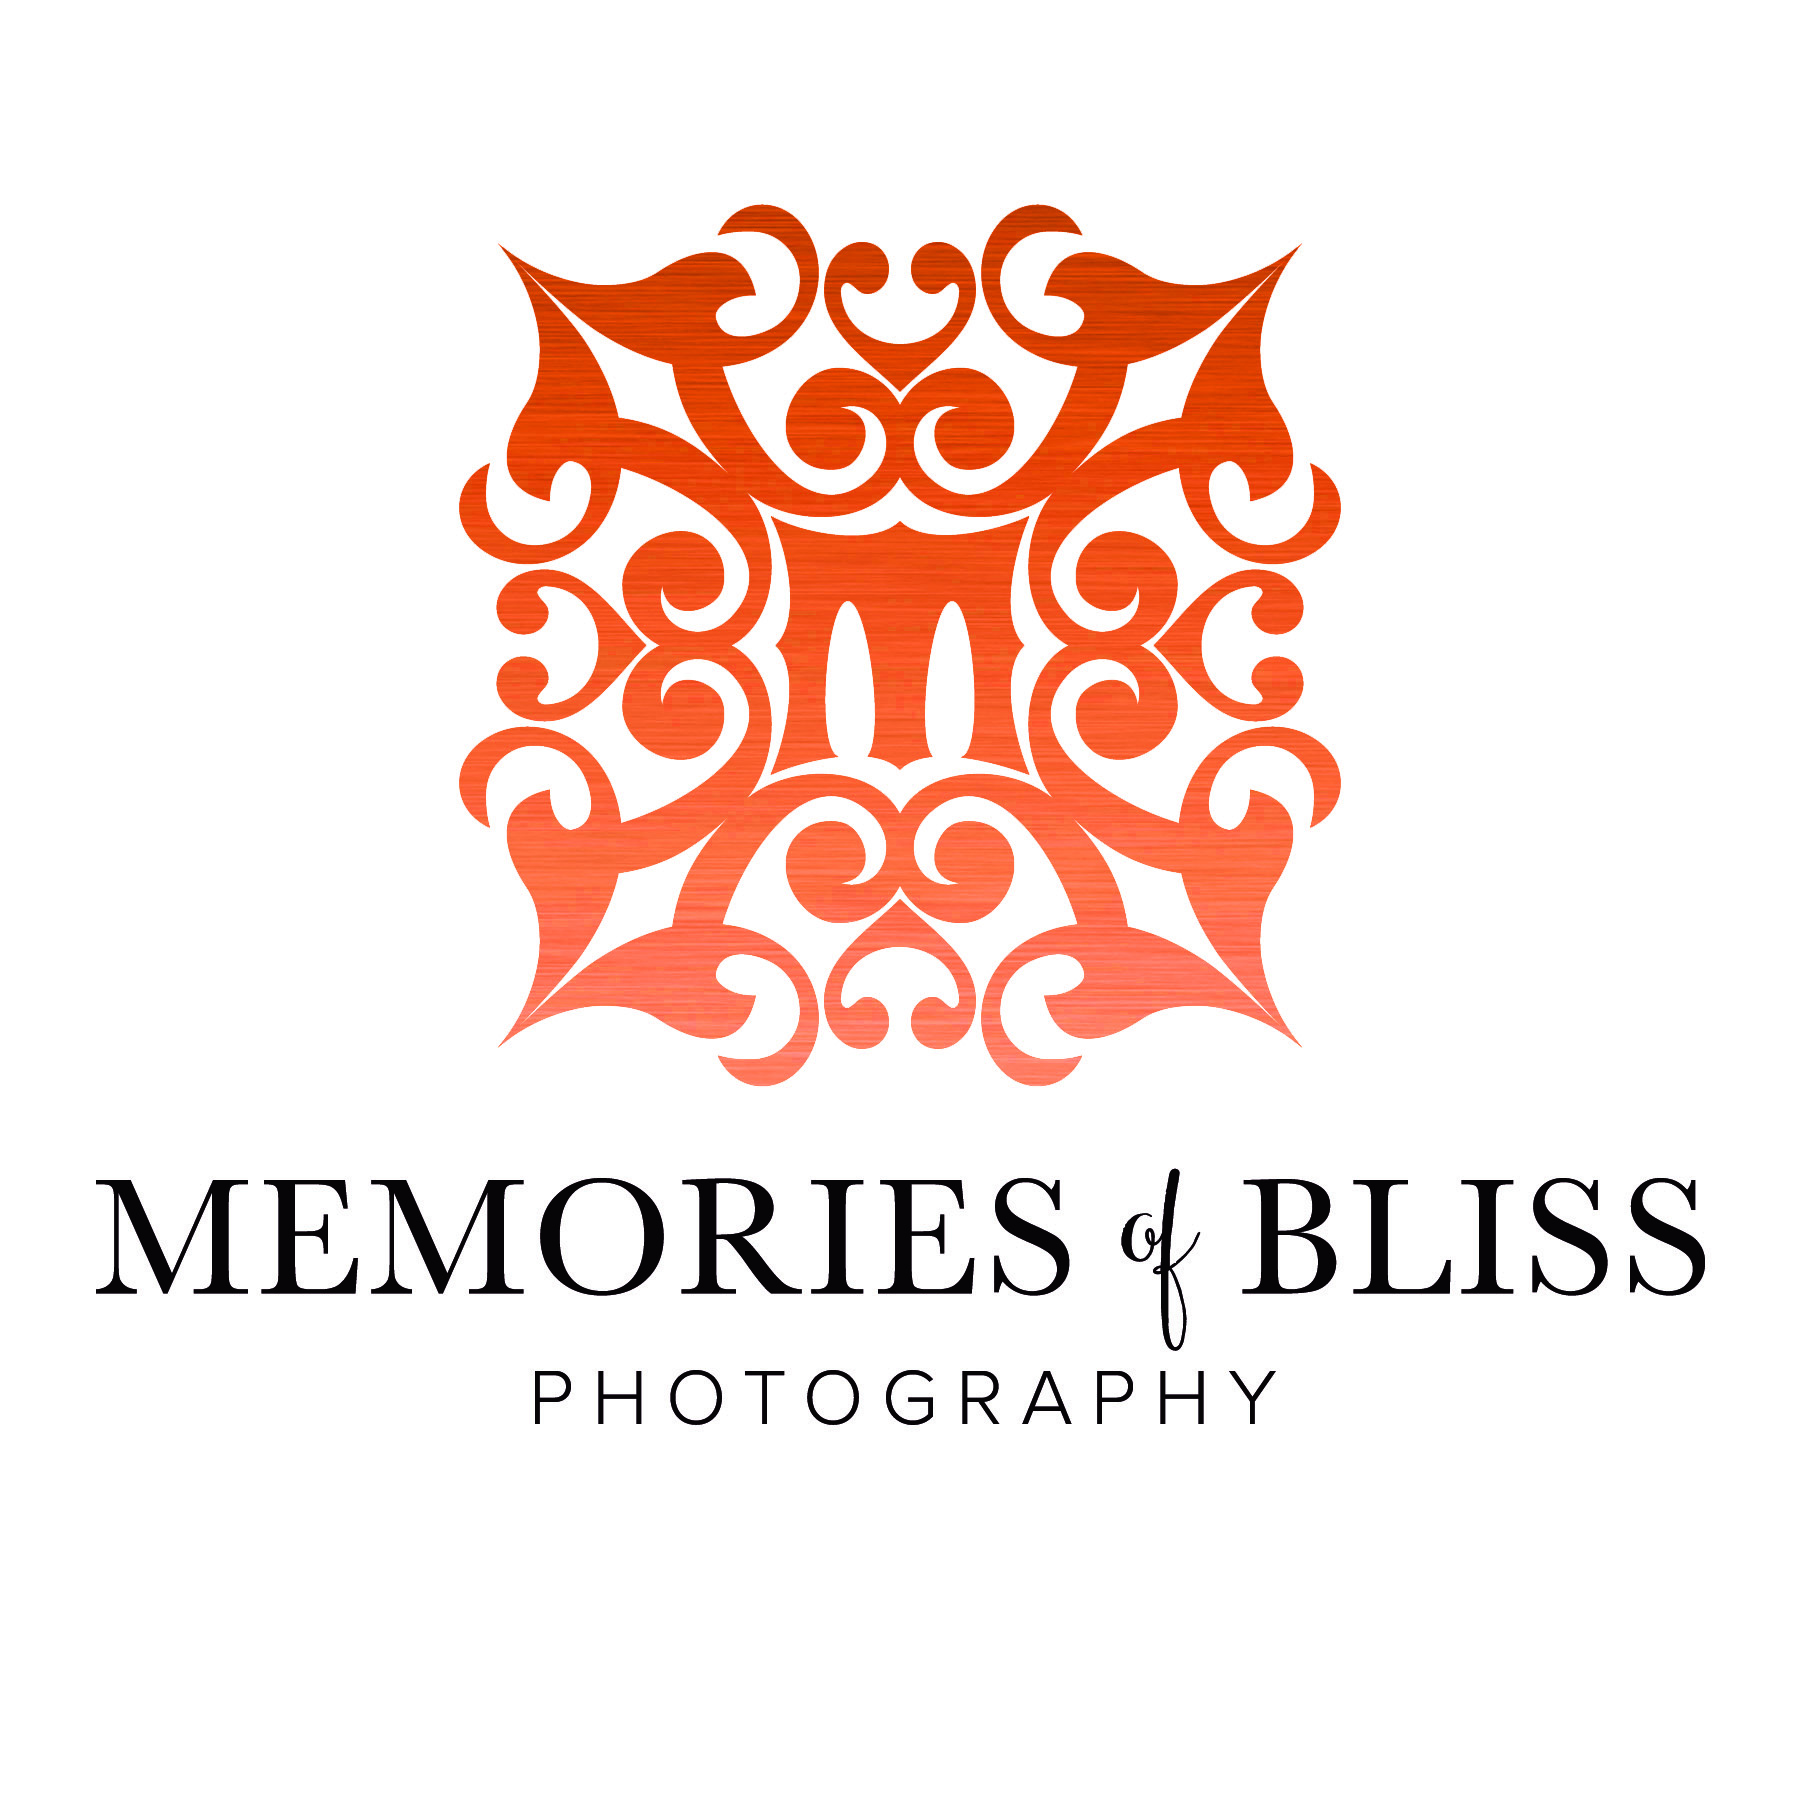 Memories of Bliss Photography